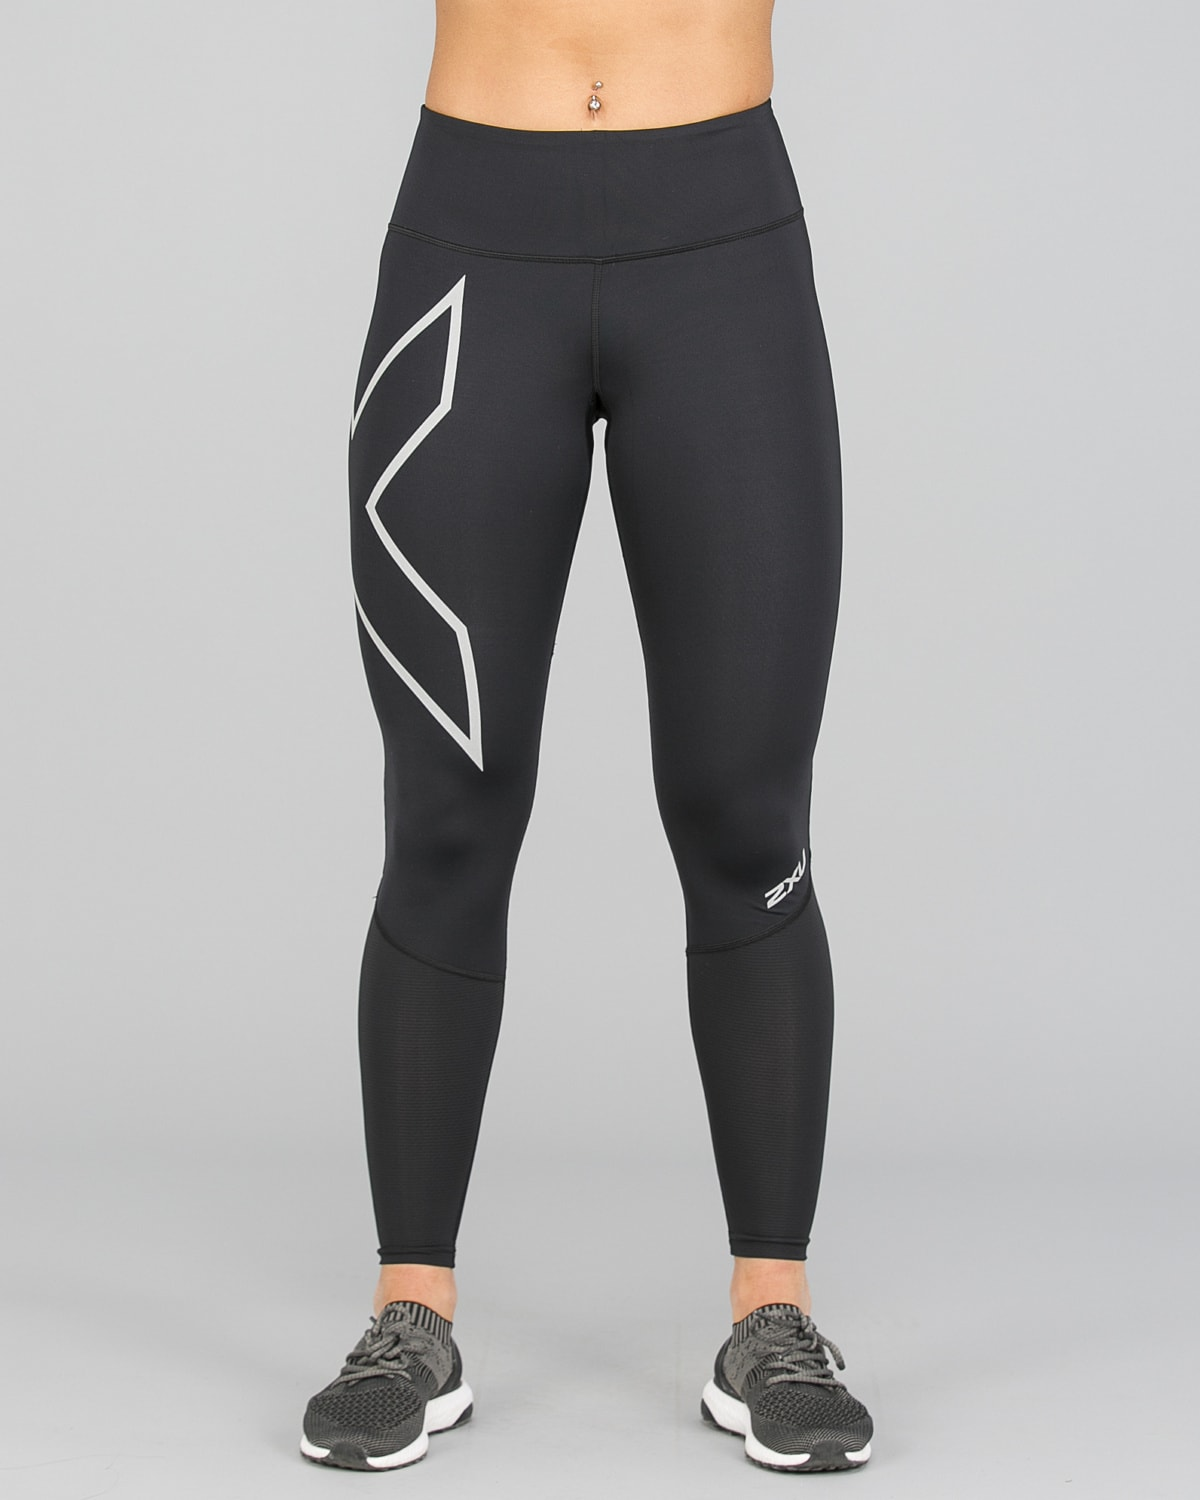 2XU Run Mid-Rise Dash Comp Tights Women – Black:Silver Reflective13